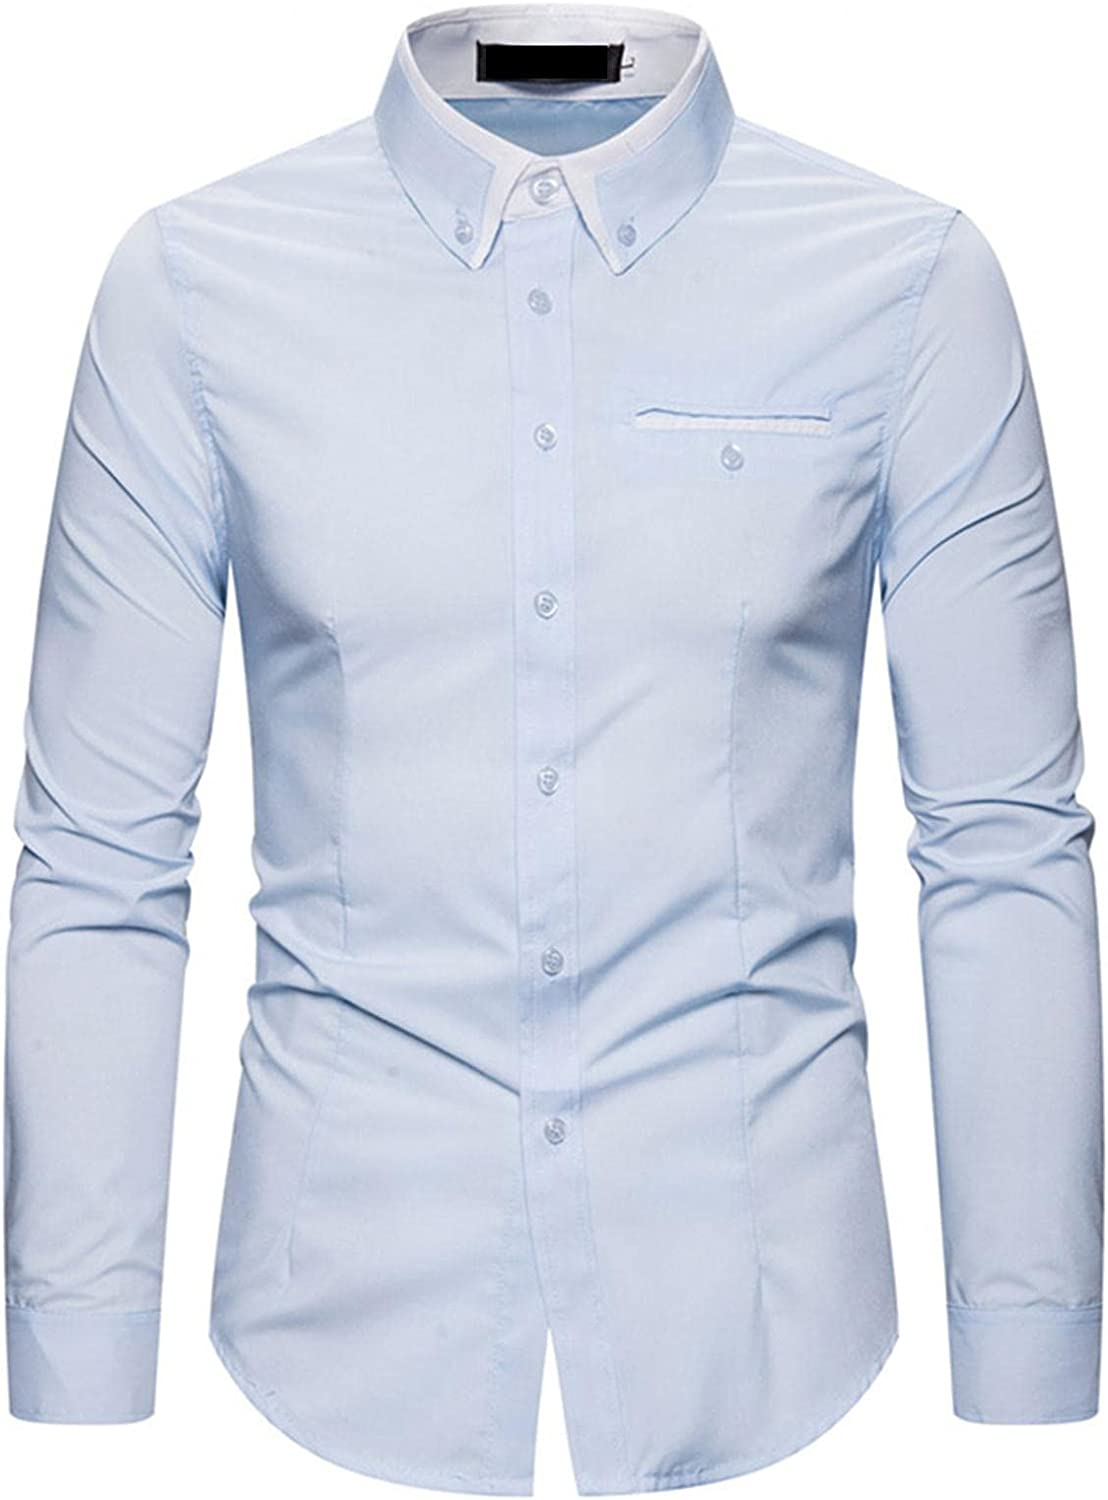 Huangse Men's Classic Fit Business Dress Shirt Long Sleeve Casual Fashion Patchwork Button Down Shirt with Pocket